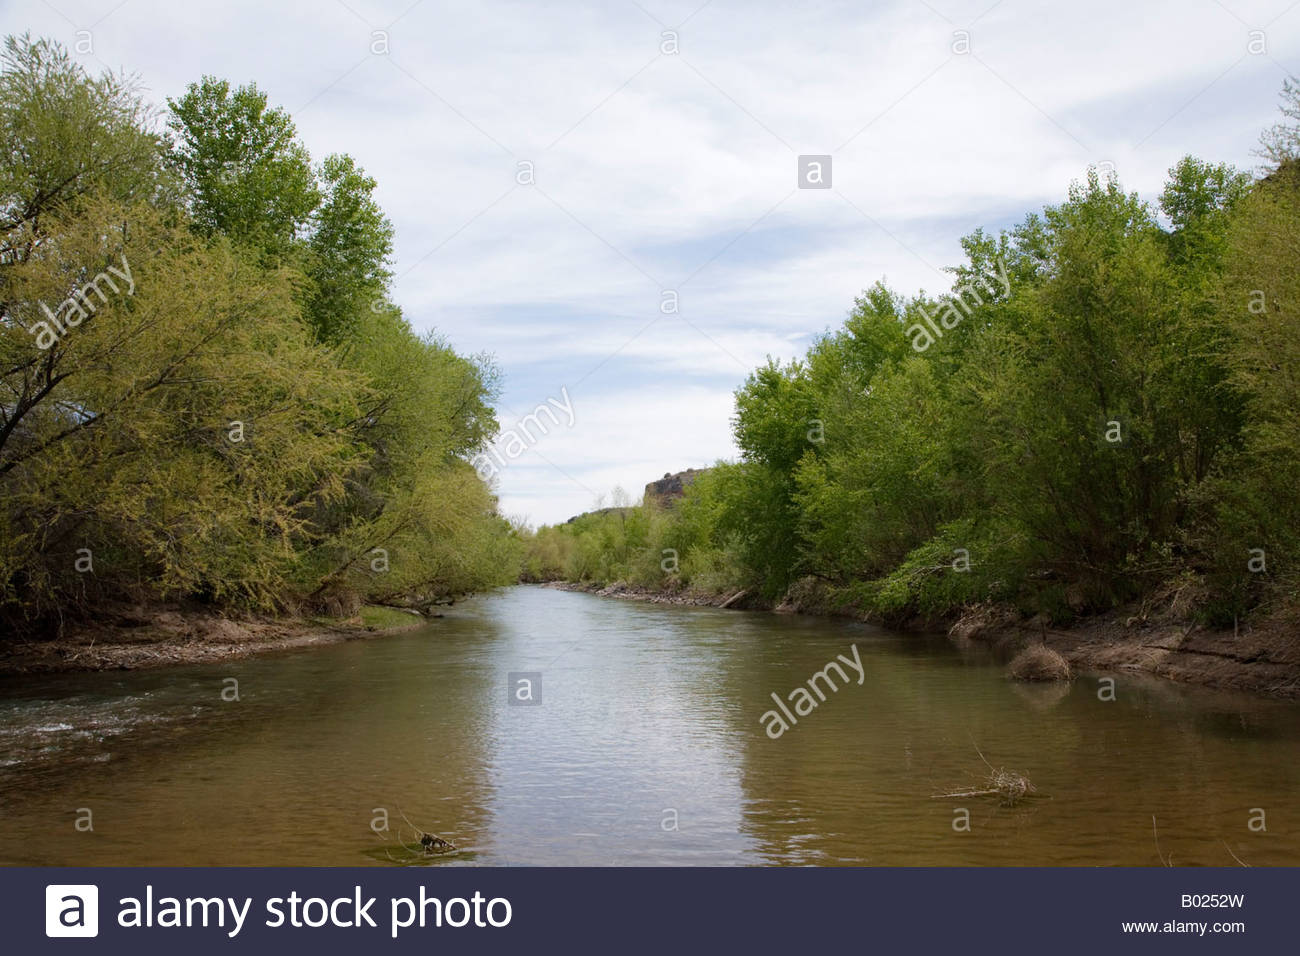 Gila River riparian area tree lined cottonwoods - Stock Image